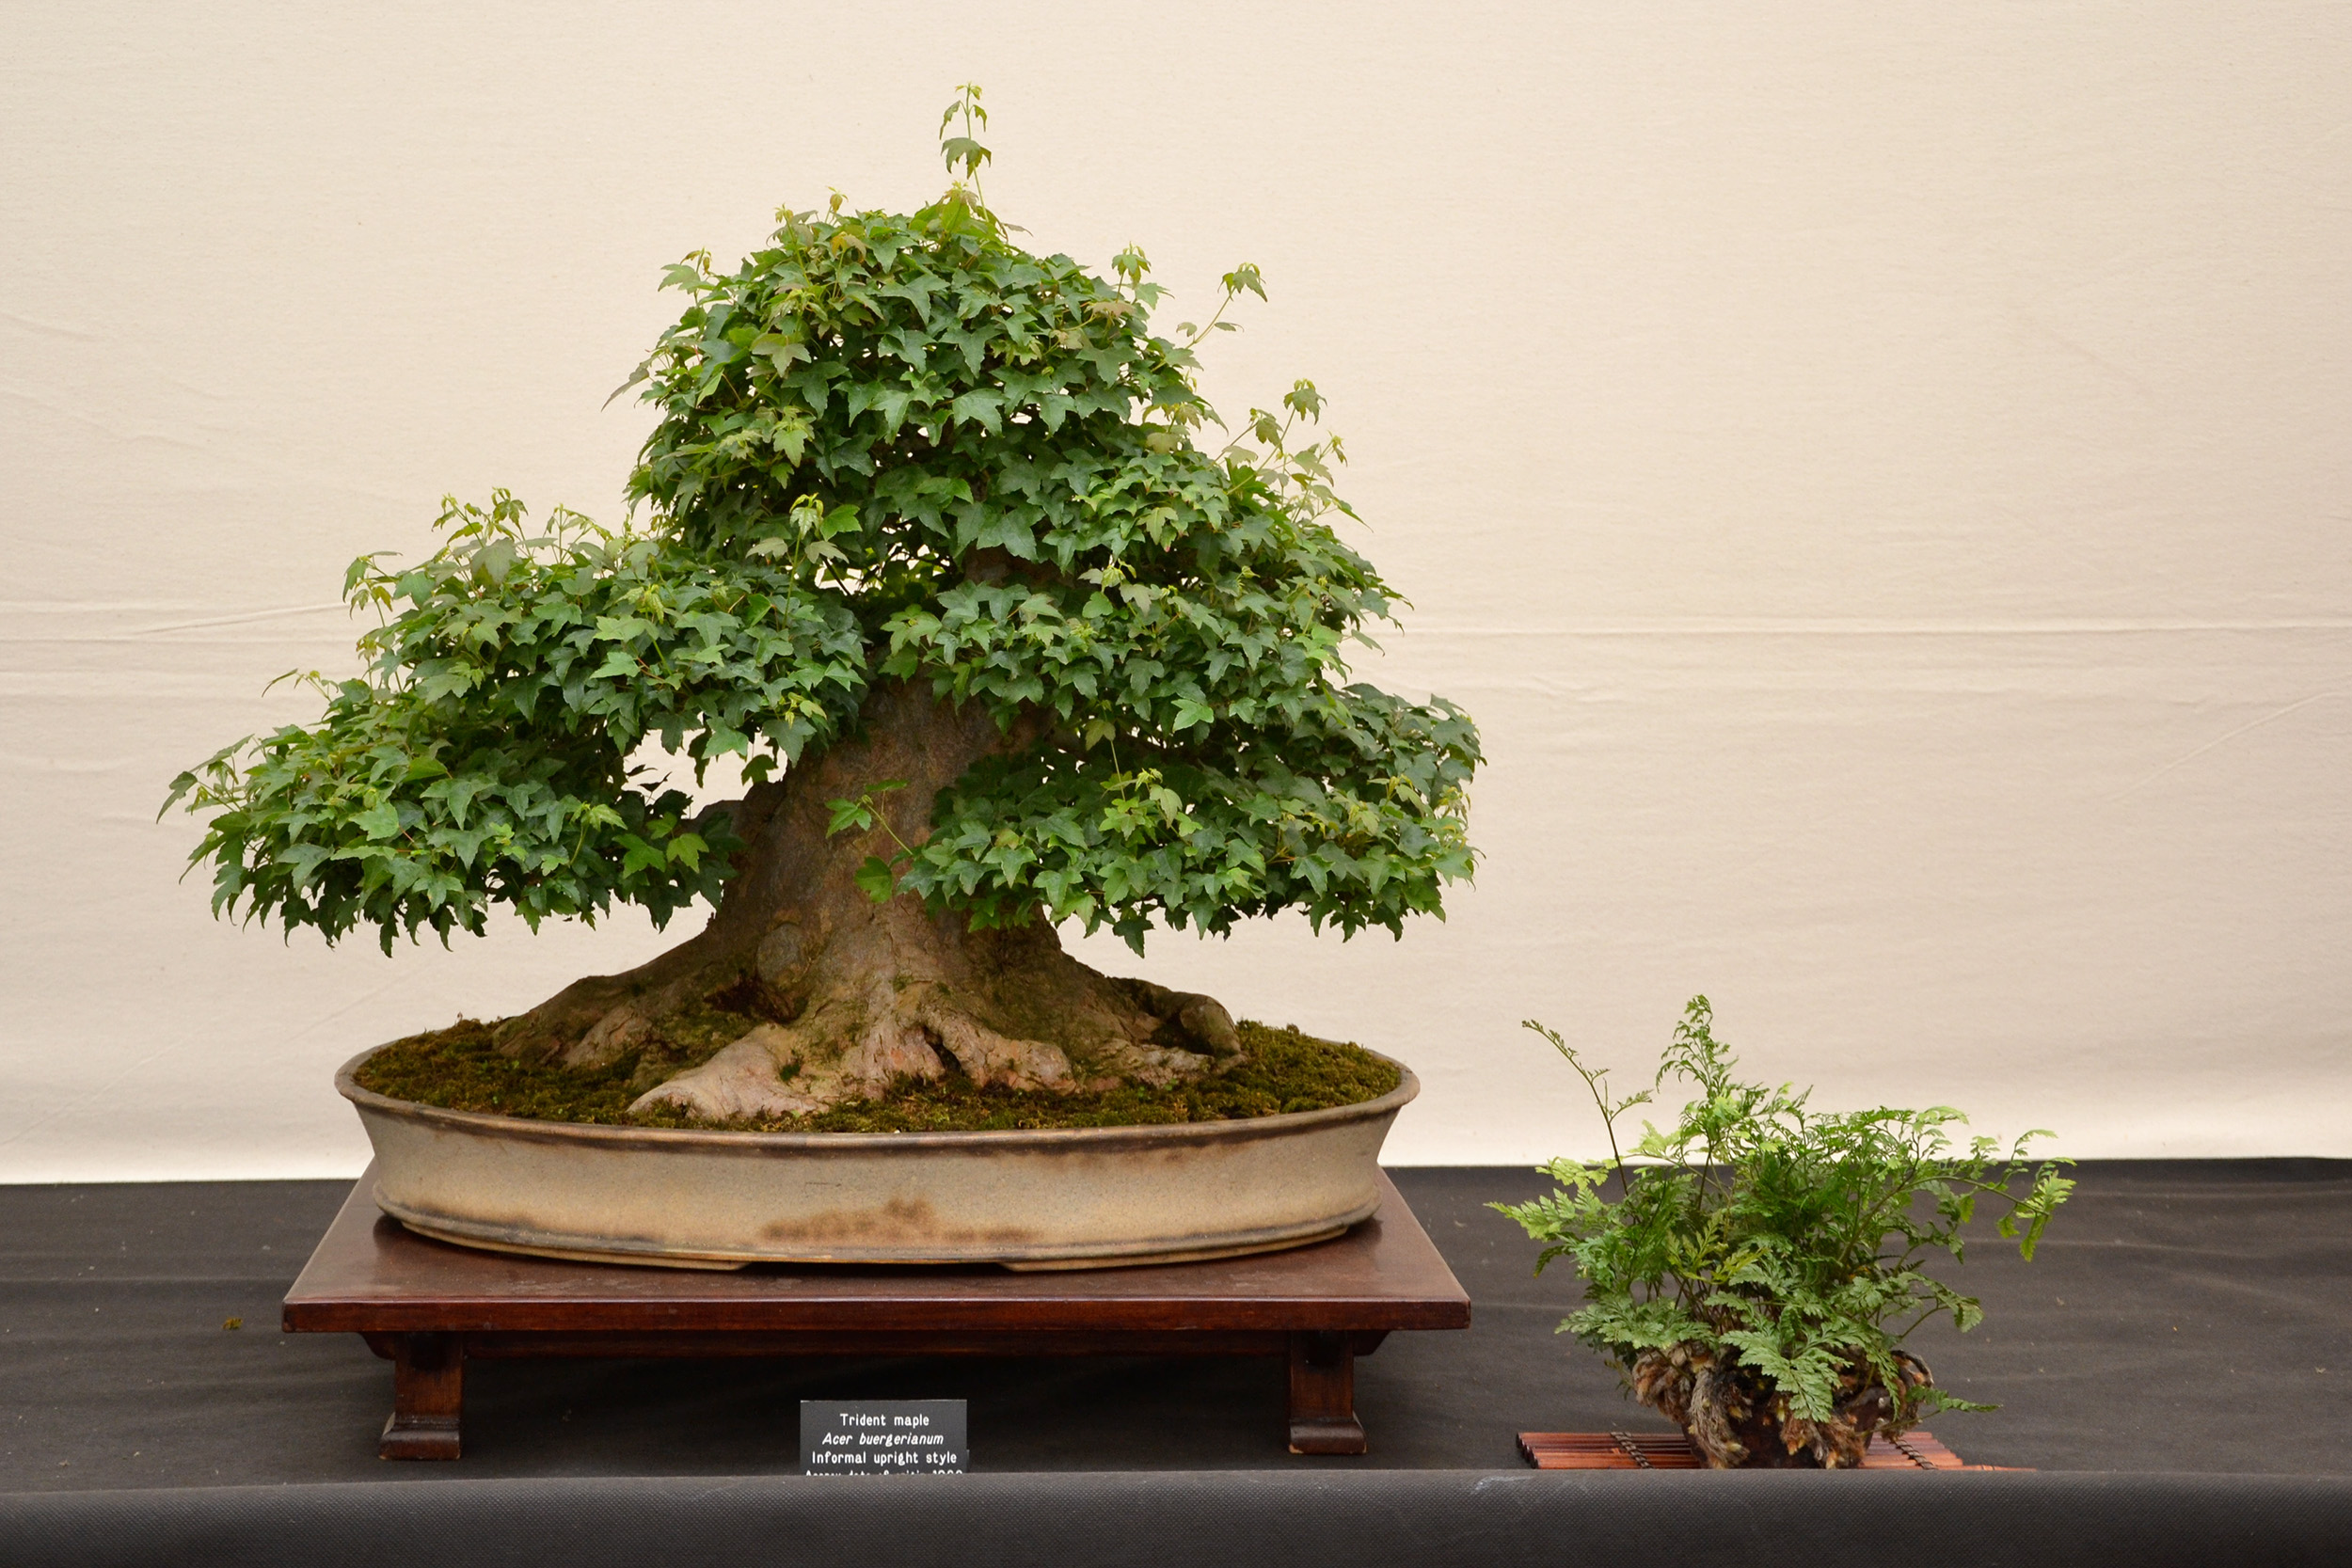 Trident maple bonsai, Acer, Pot, Moss, Old, HQ Photo